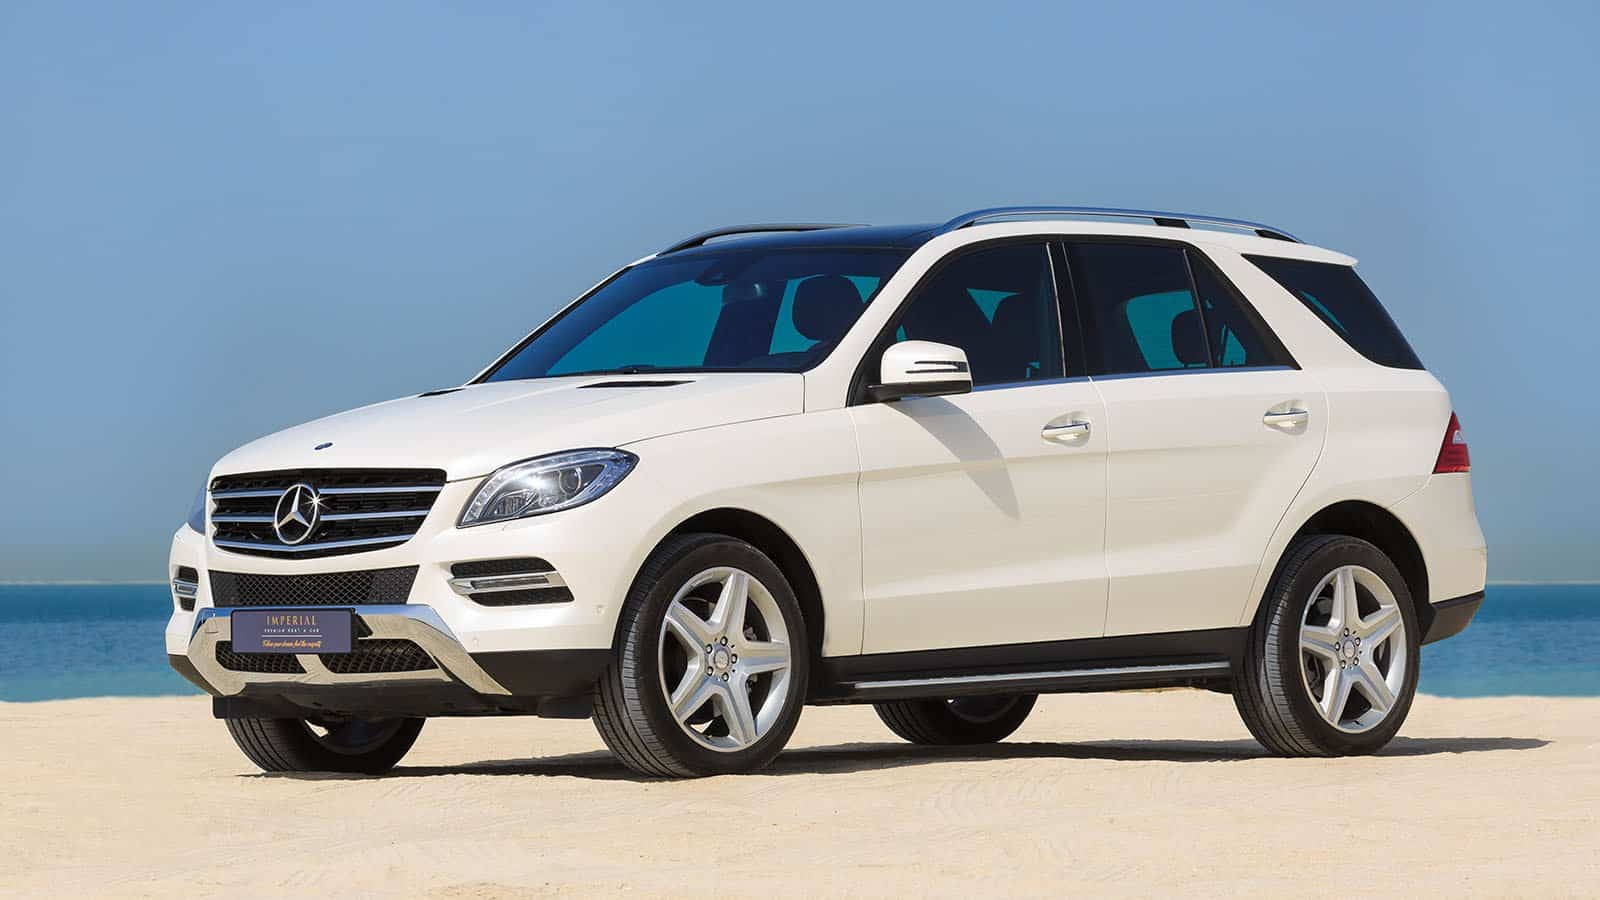 Mercedes Benz ML350 Rent Dubai | Imperial Premium Rent a Car